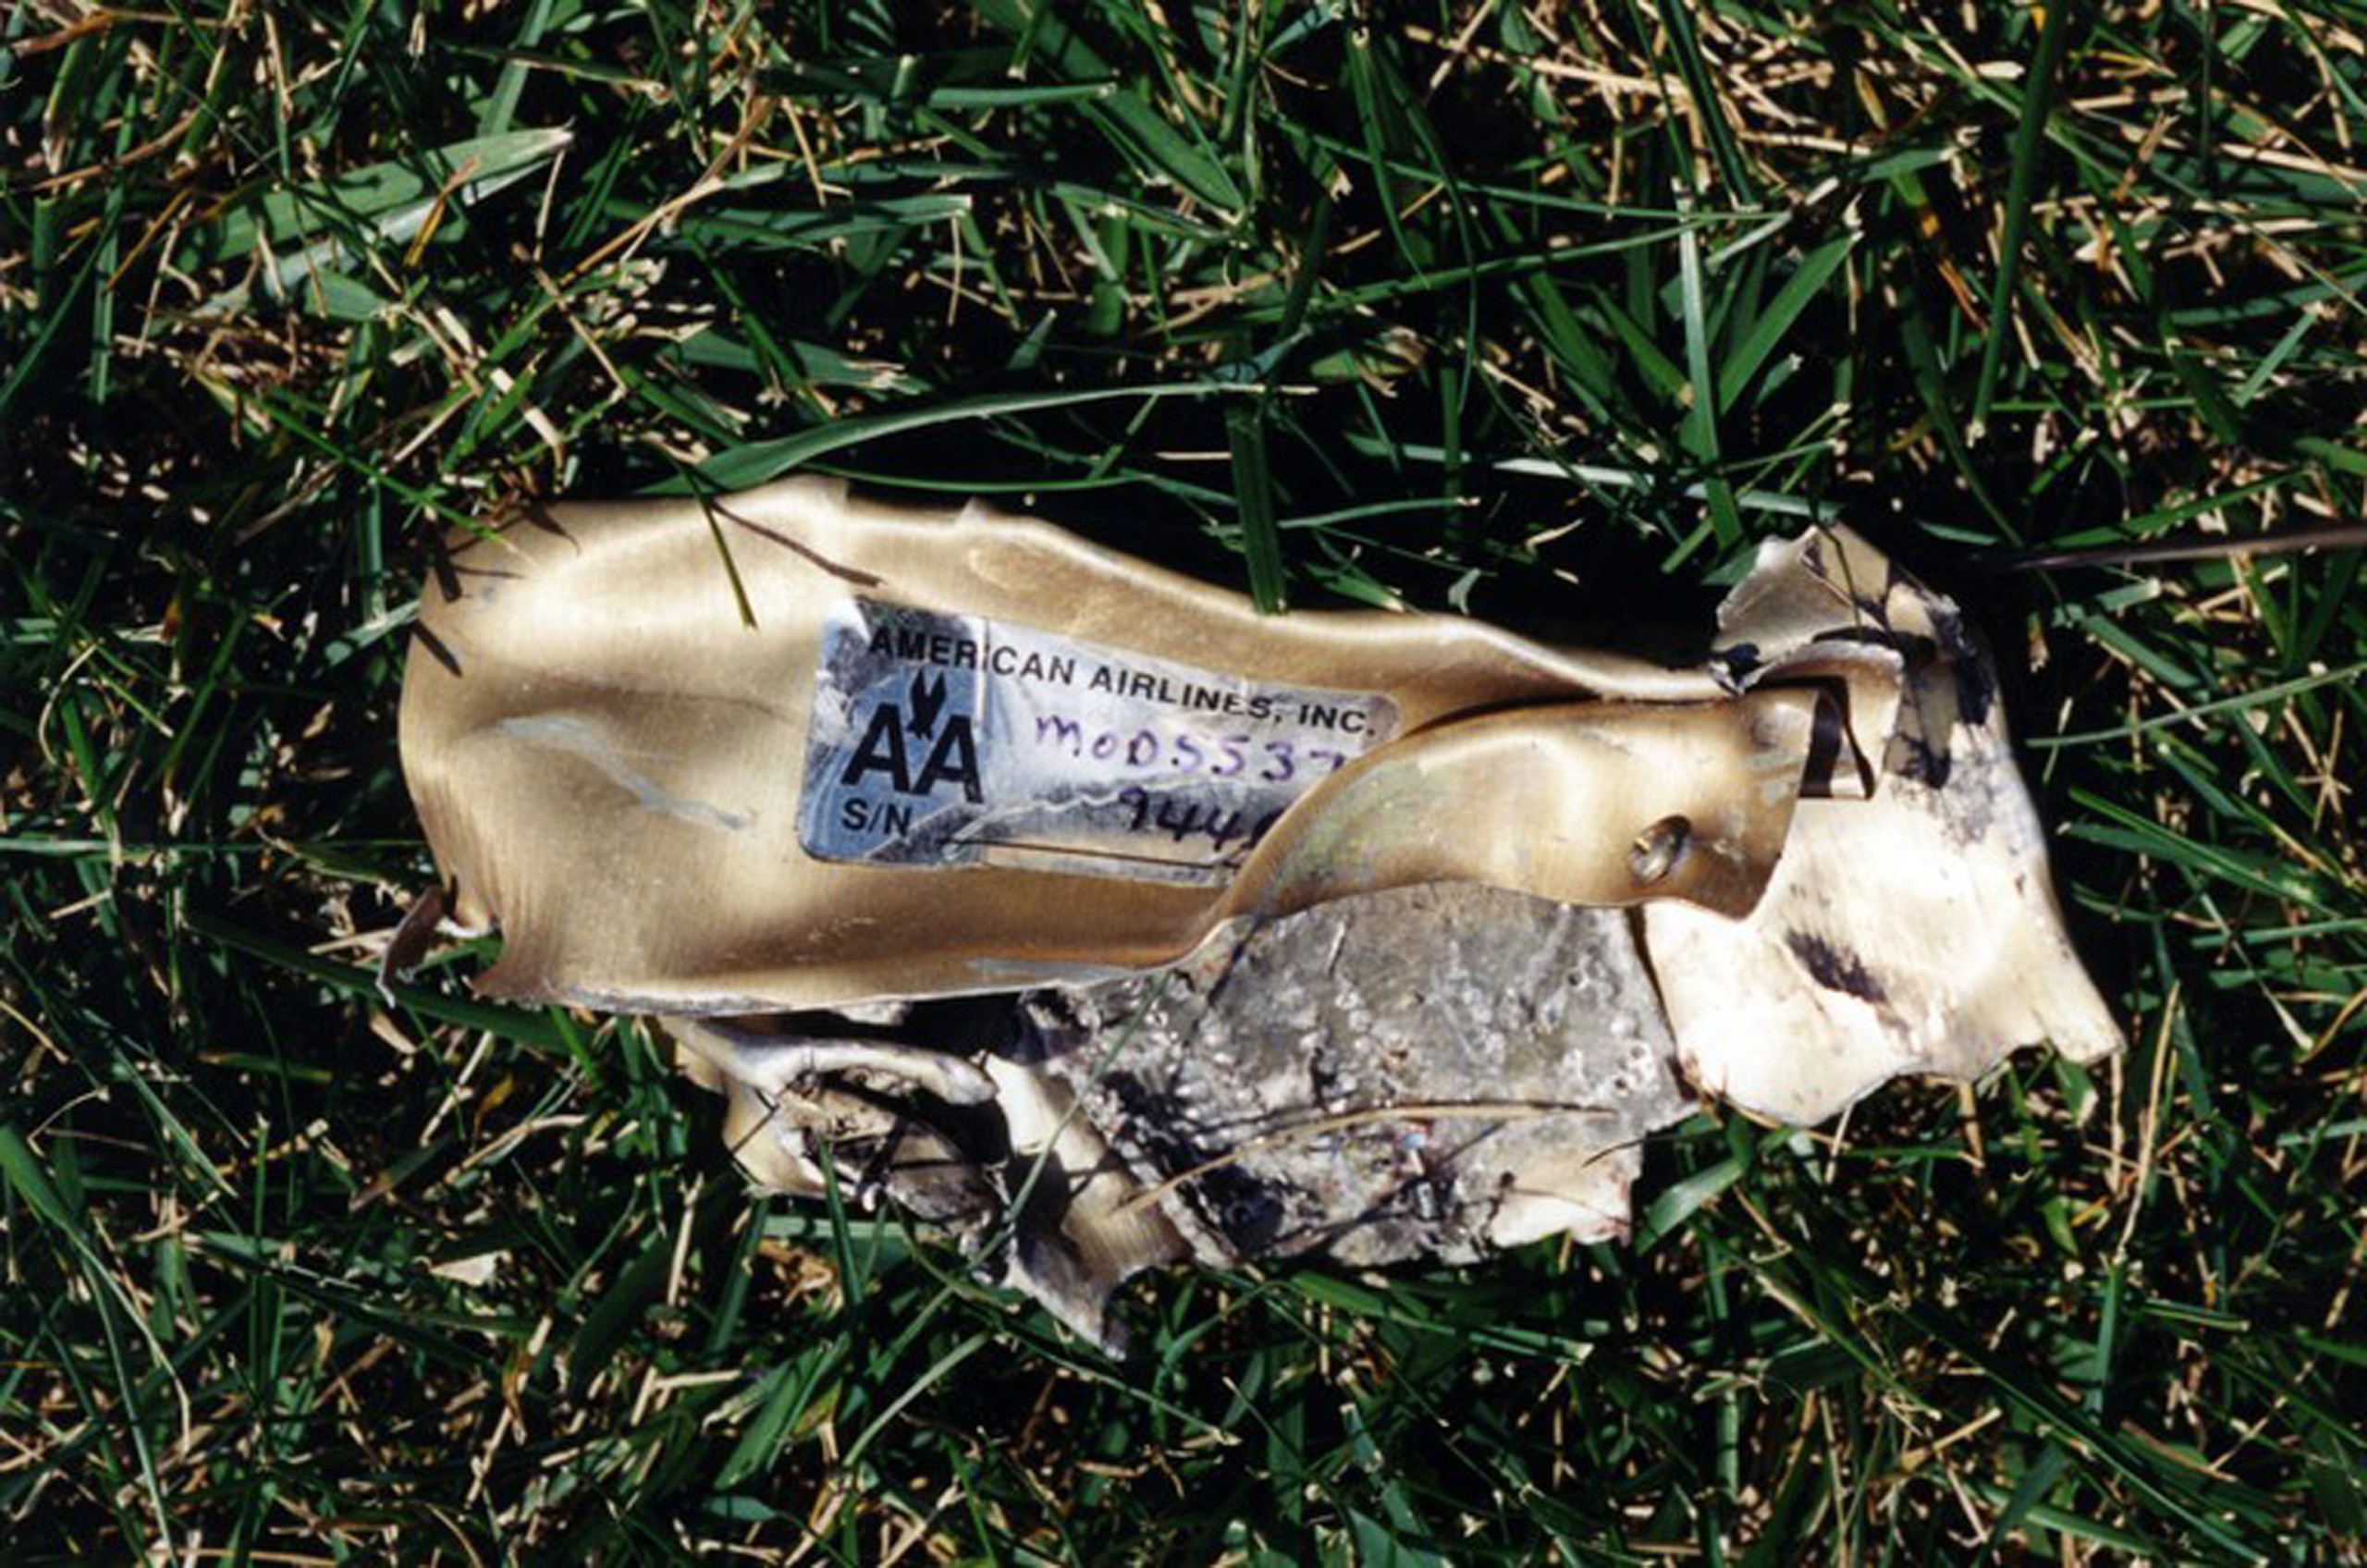 Mangled debris from a plane sits in grass after the hijacked American Airlines Flight 77 crashed into the Pentagon in Arlington County, Virginia, on Sept. 11, 2001.